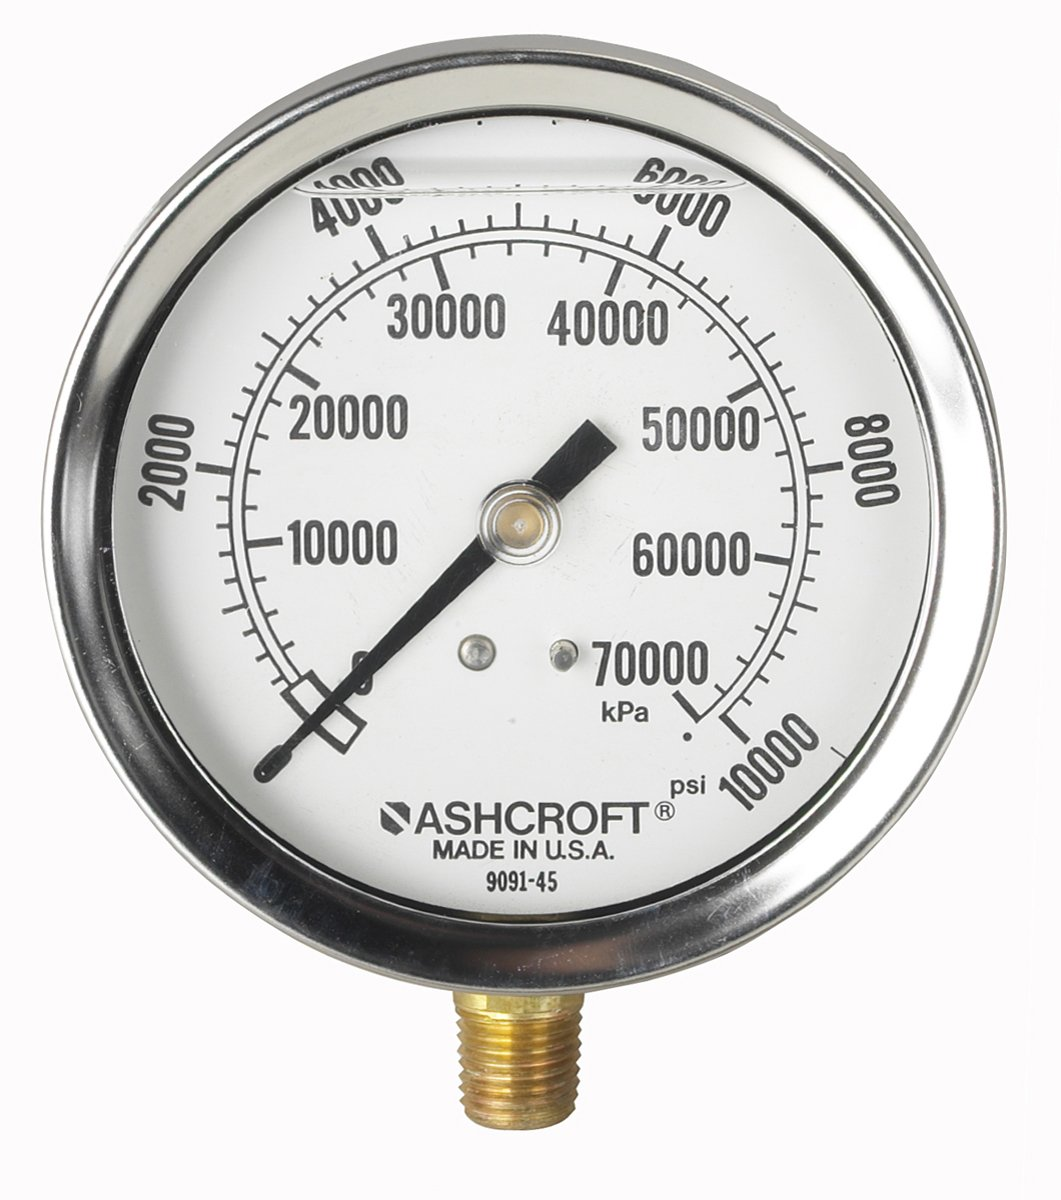 9658 Pressure Gauge with 2-Scales Glycerin or Silicone Filled OTC